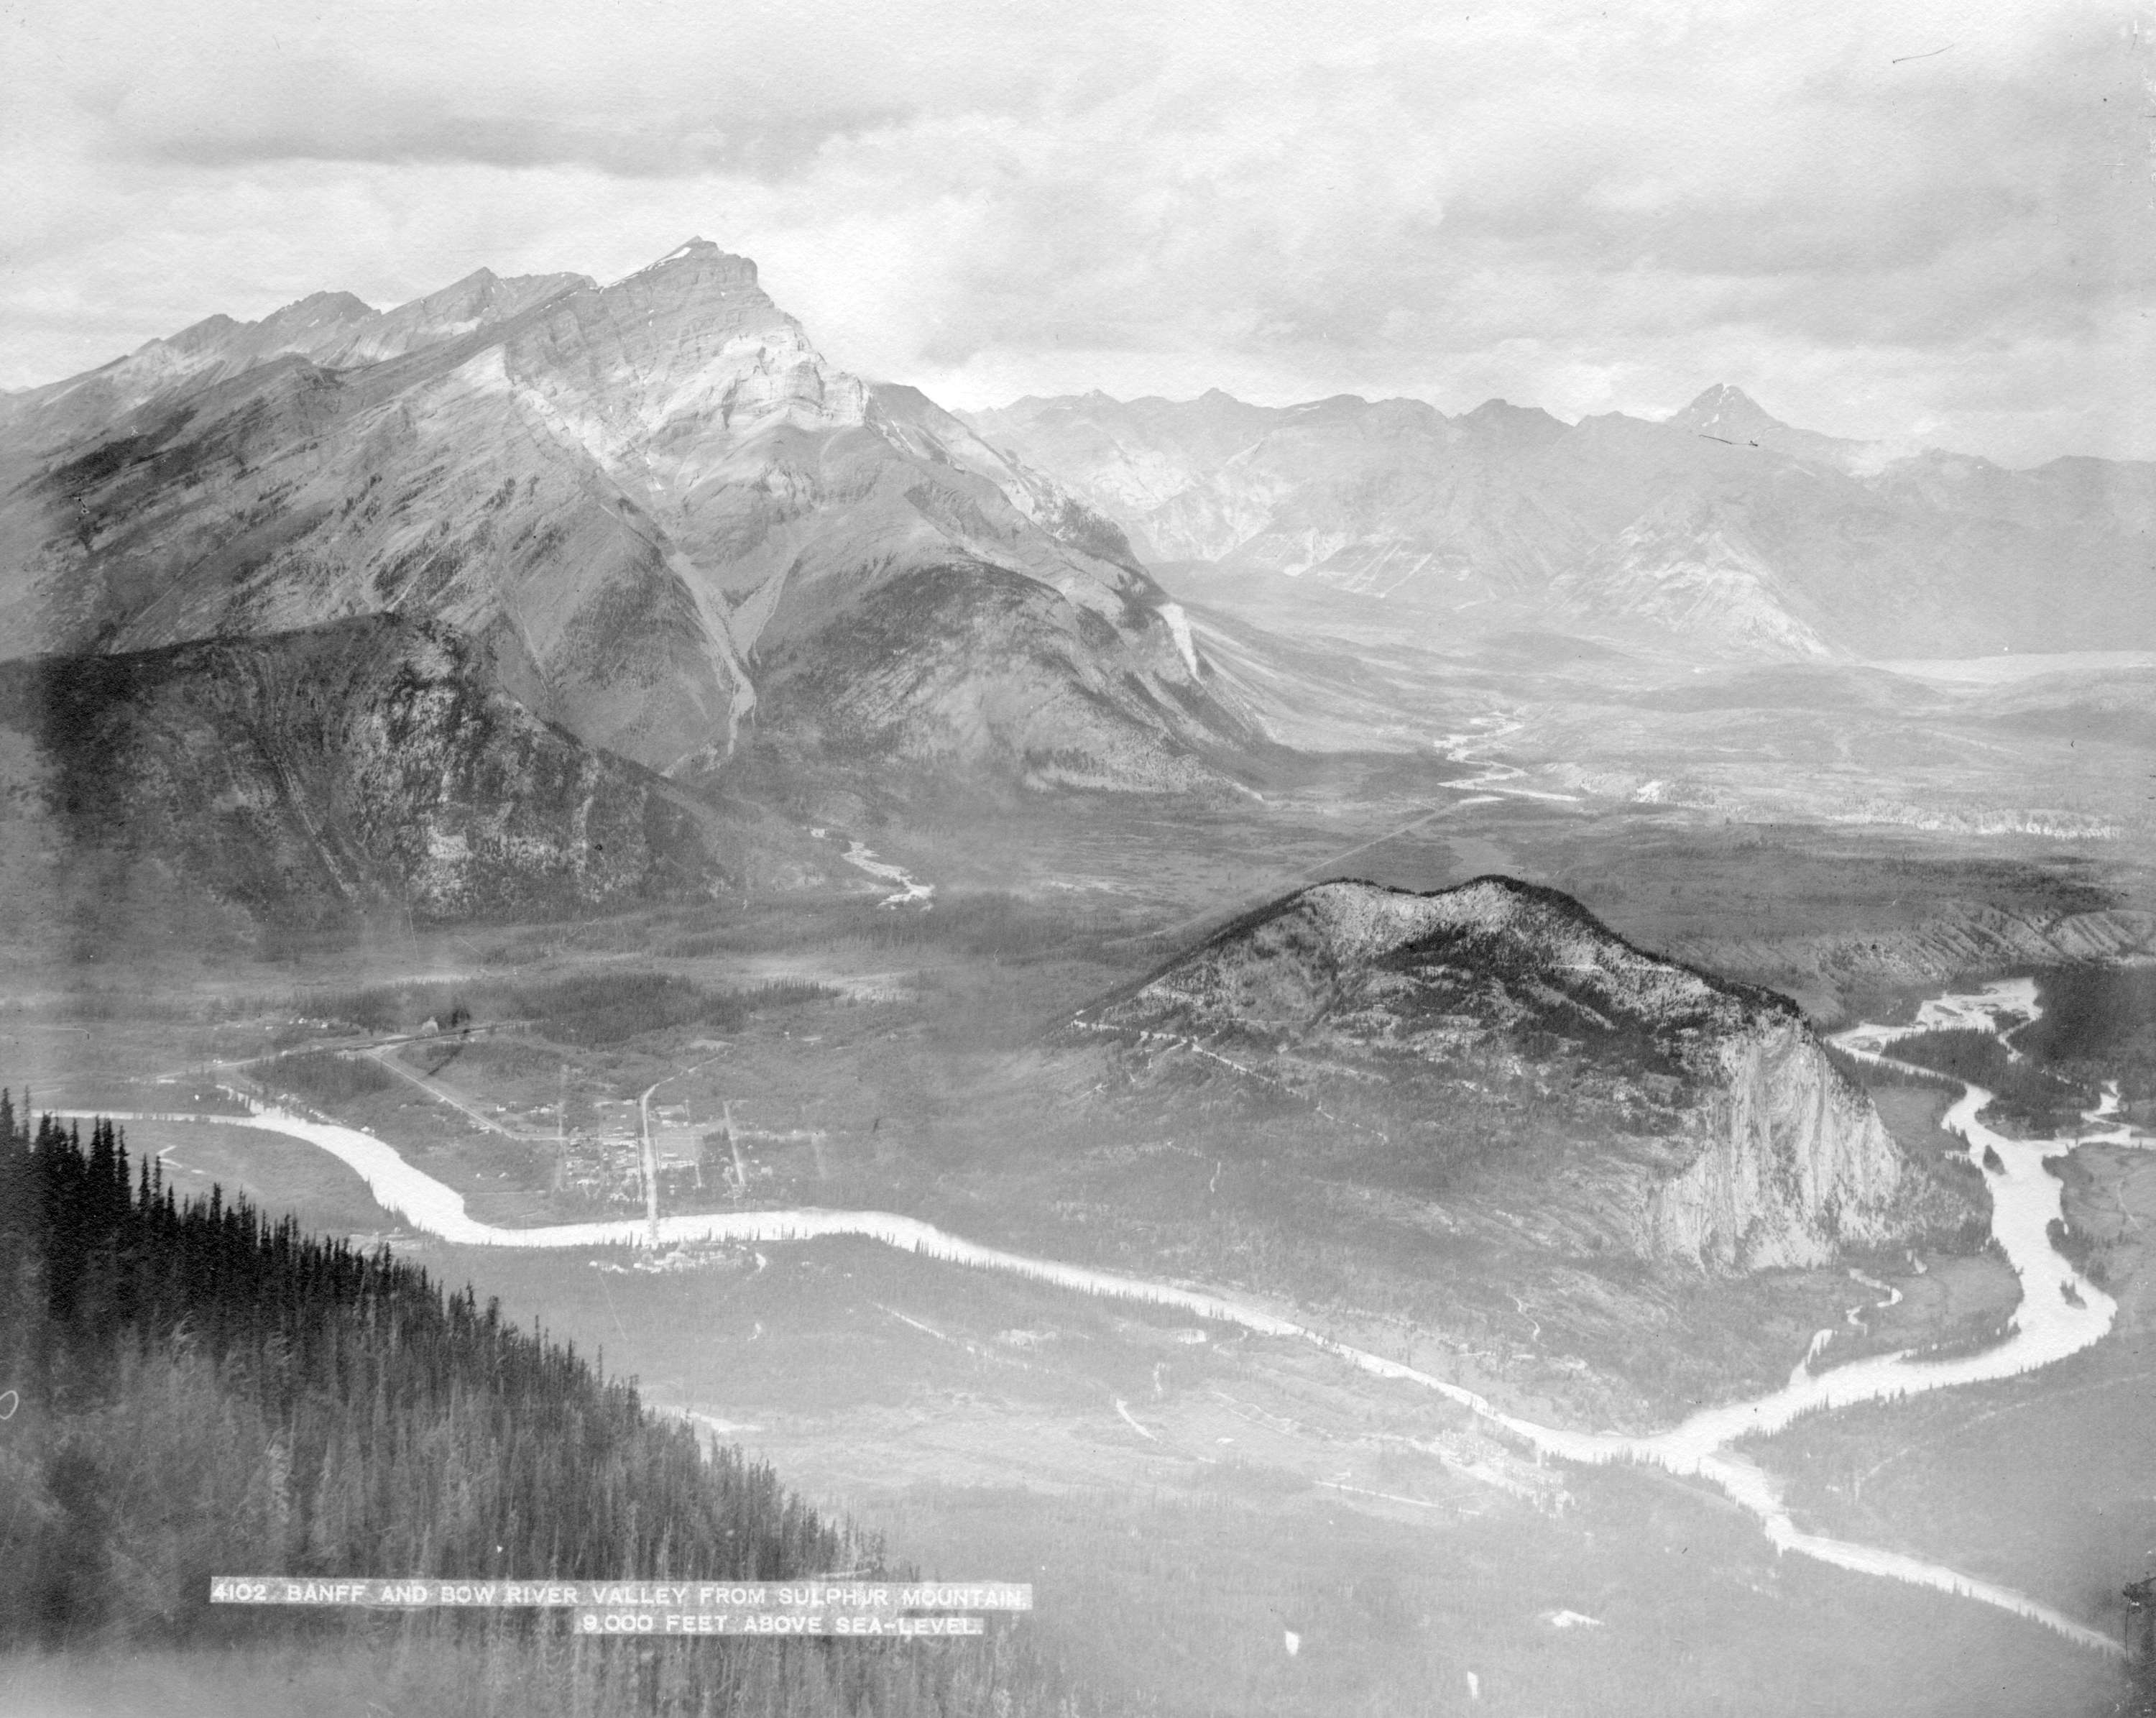 Banff And Bow River Valley From Sulphur Mountain Feet Above - Feet above sea level